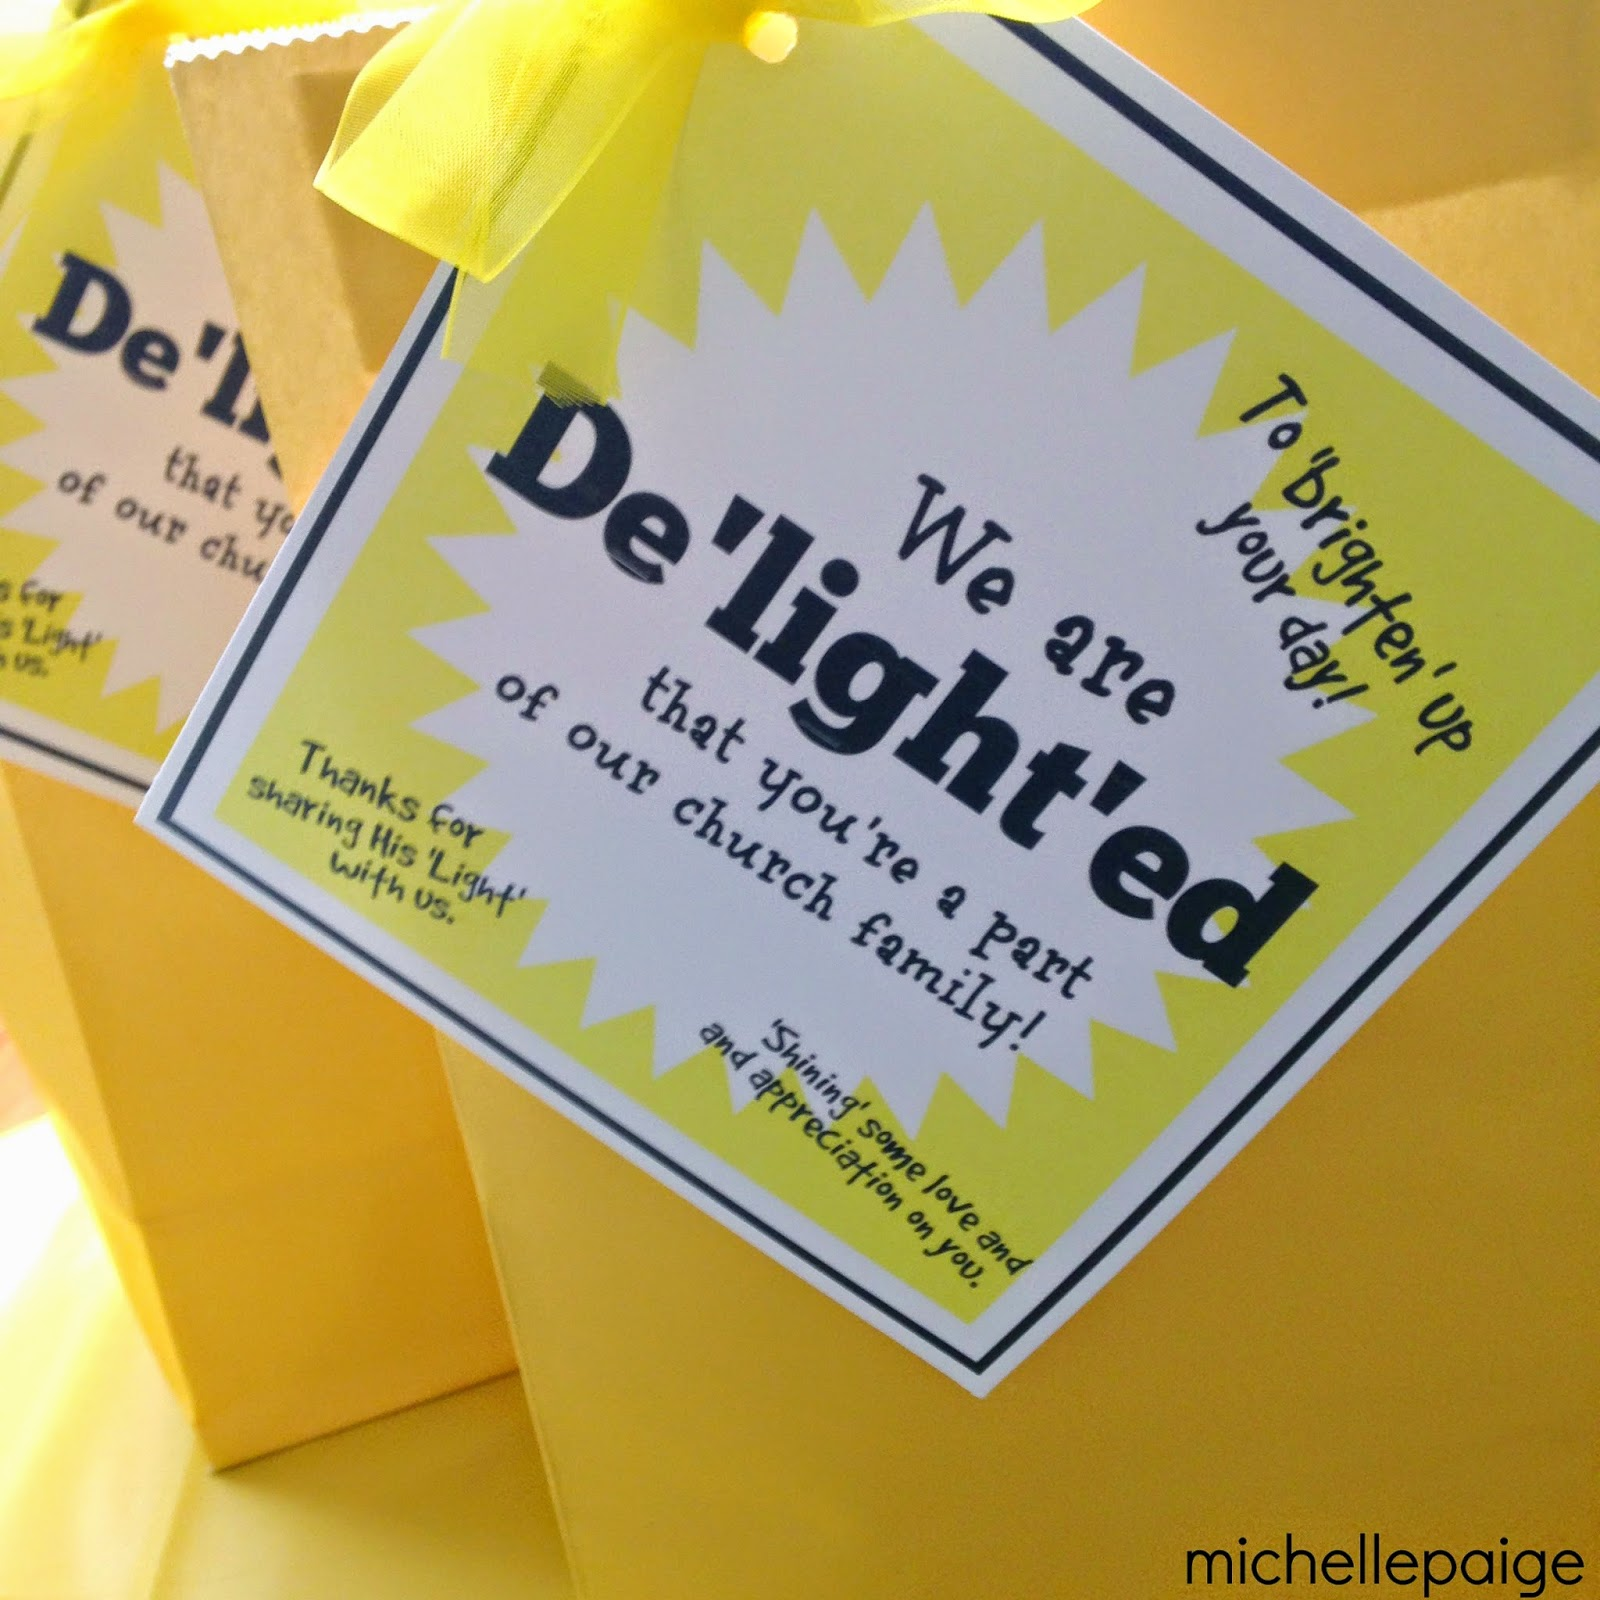 michelle paige blogs: Delightful Pastor Appreciation Gifts